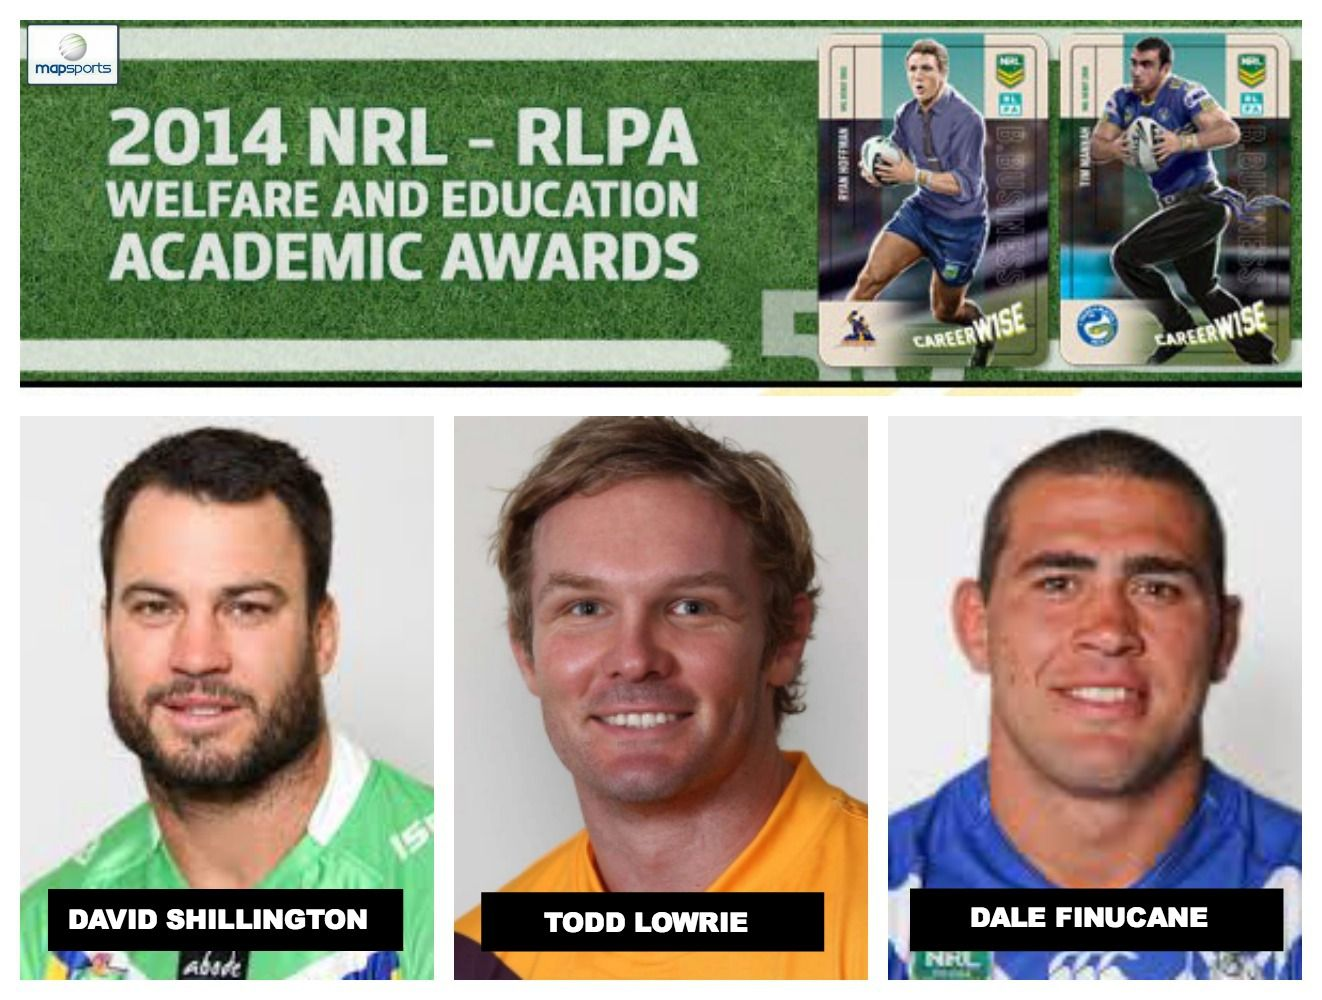 Map Sports congratulates 3 NRL player's selection in 2014